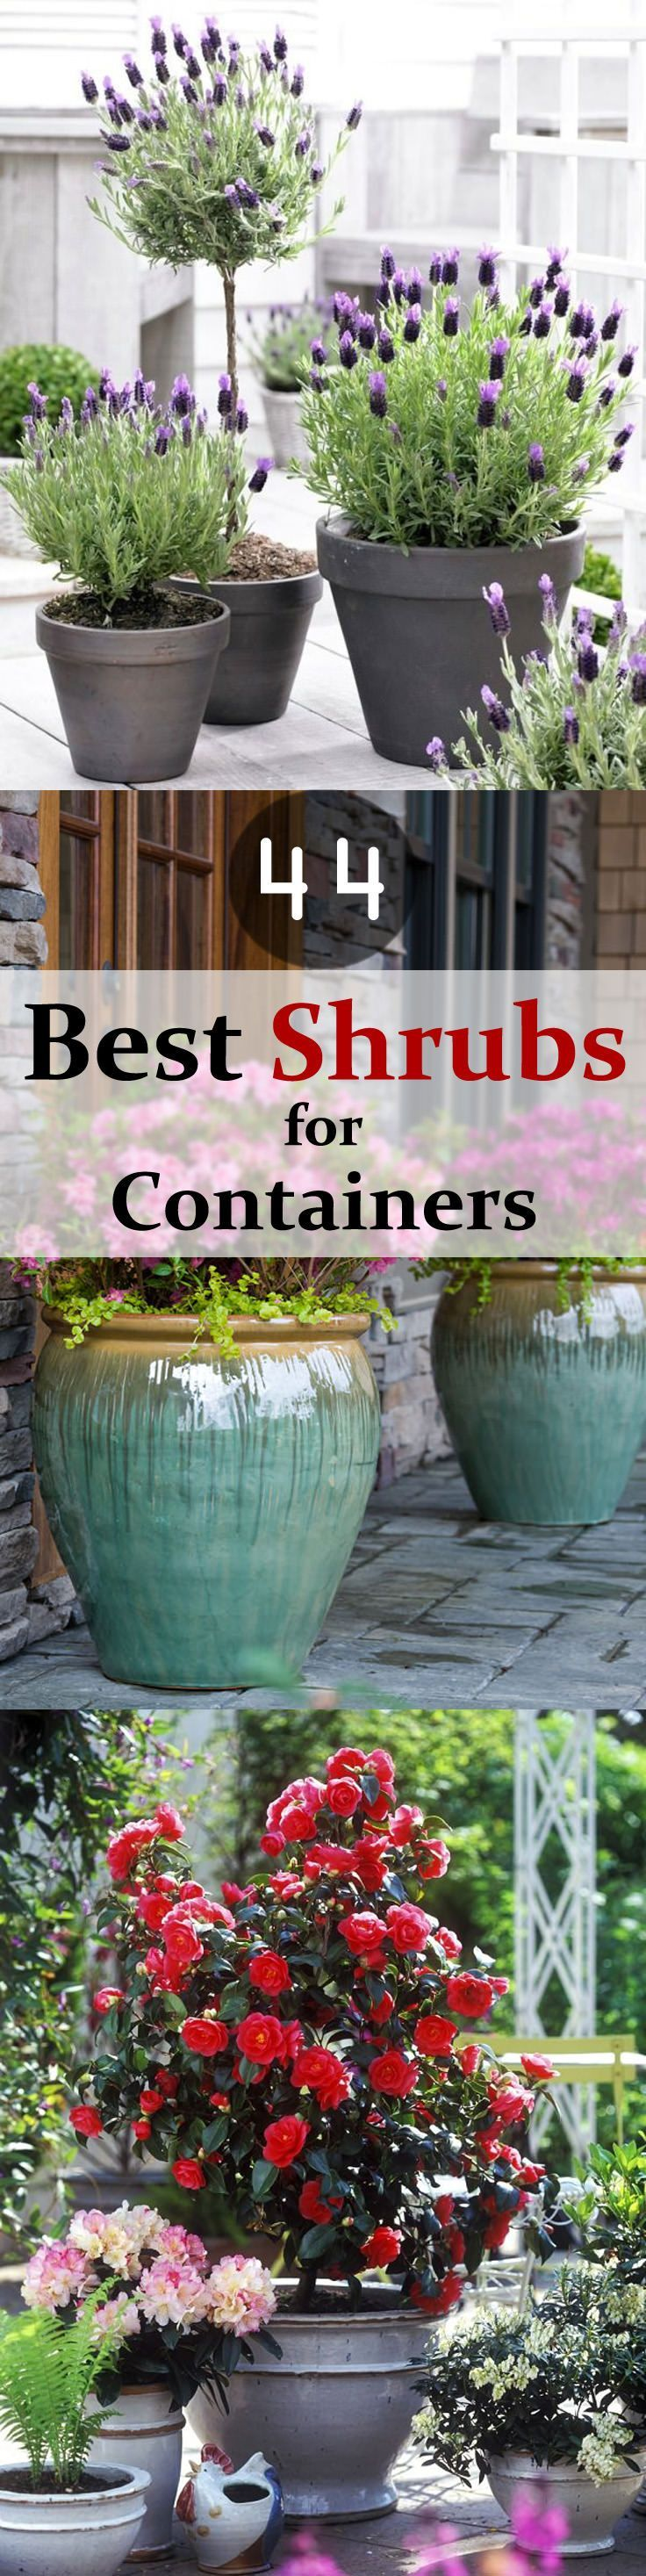 25 Best Ideas About Container Garden On Pinterest Gardening